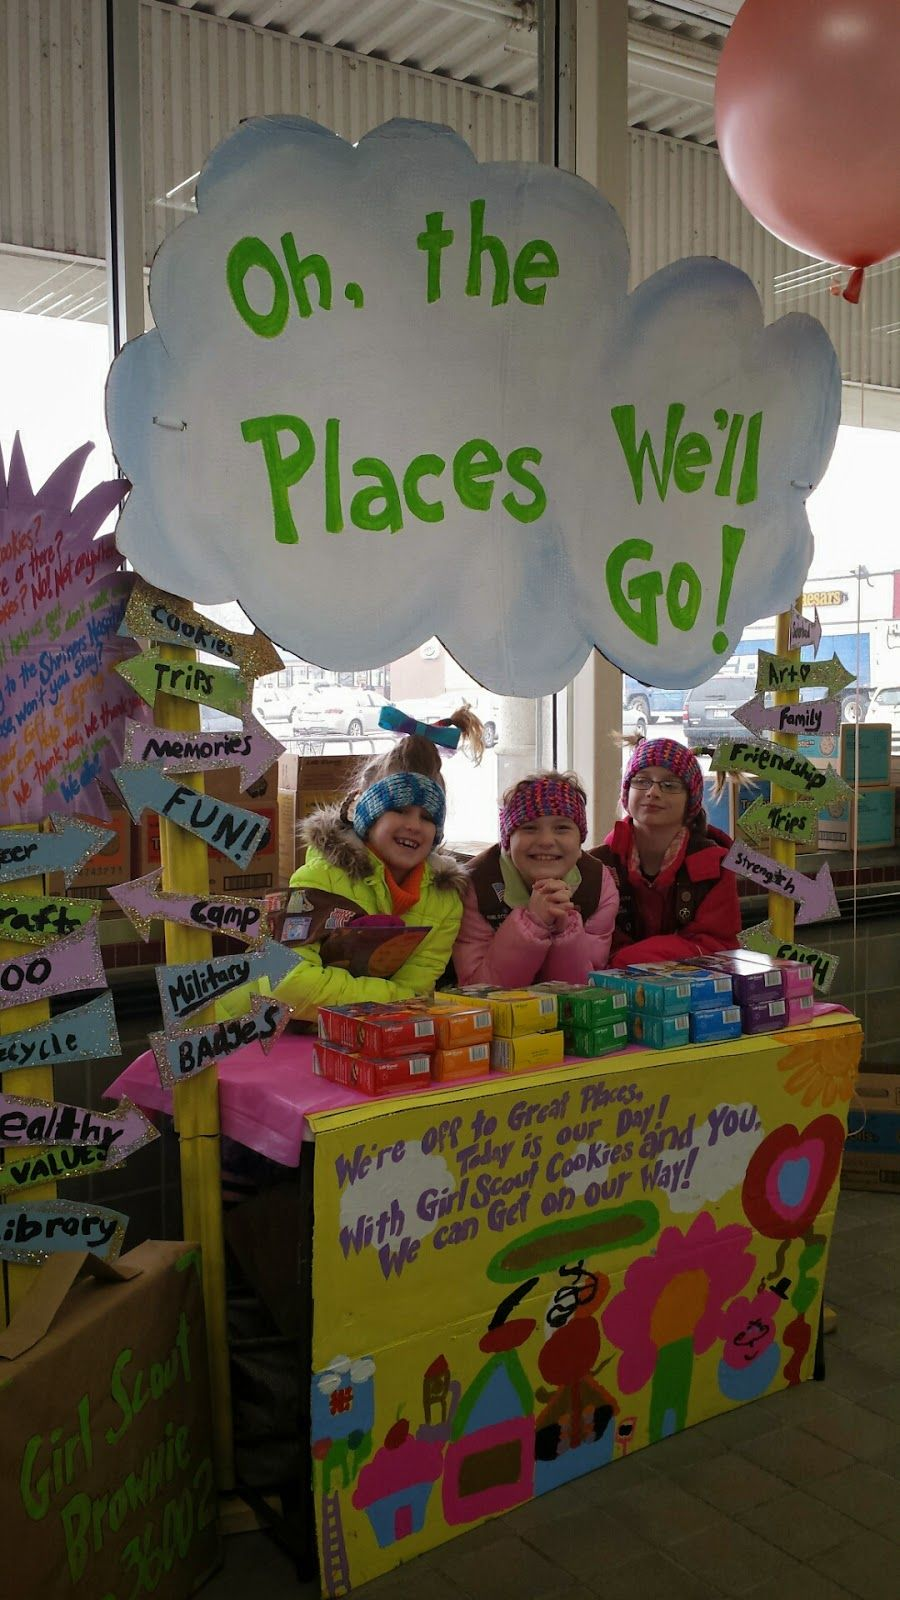 Girl scouts western pennsylvania 2015 bling your booth winner girl scouts western pennsylvania 2015 bling your booth winner publicscrutiny Image collections